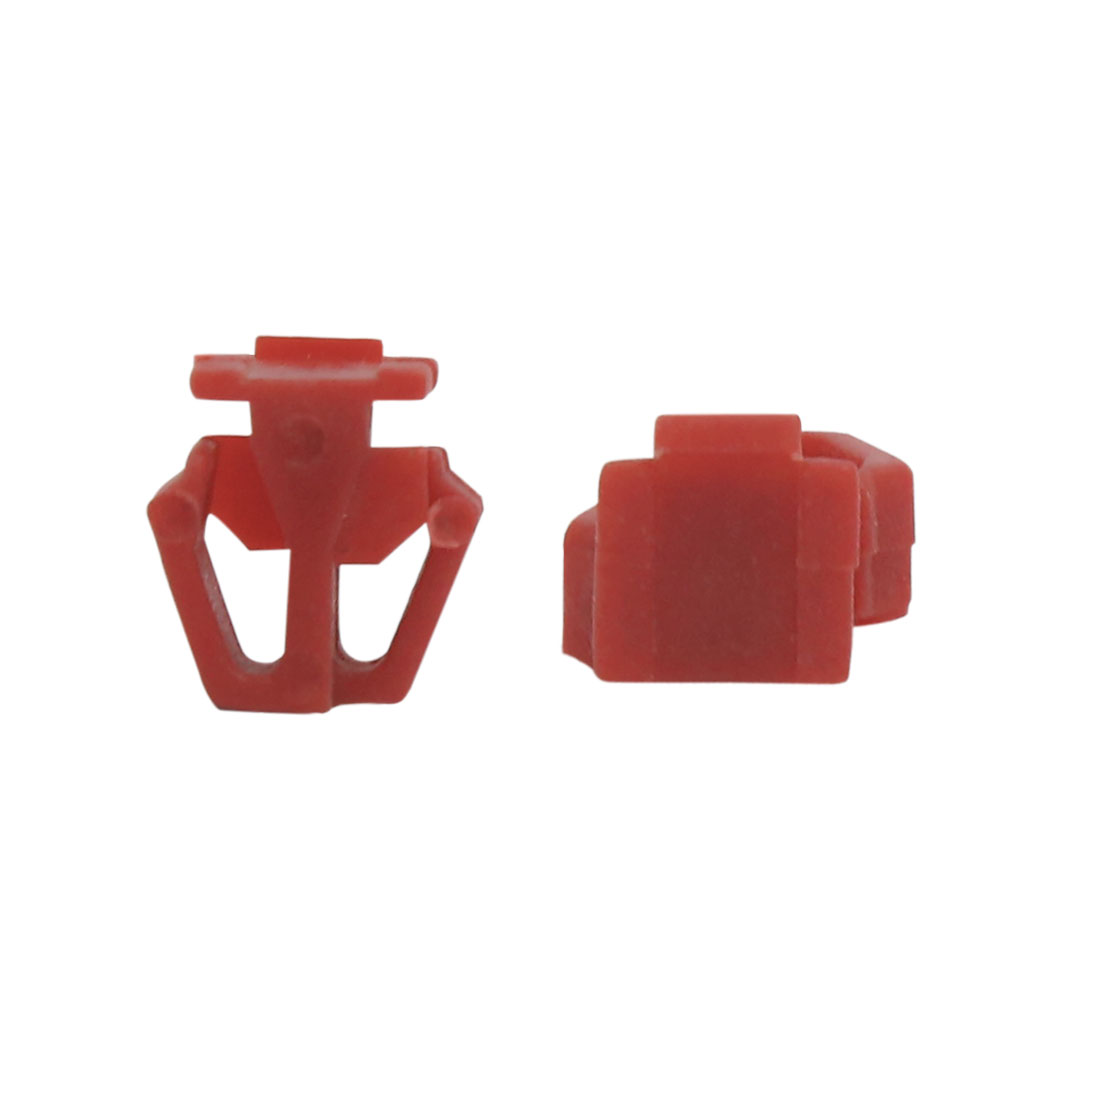 30Pcs Red Plastic Rivets Bumper Fender Clips Arch Moulding Fastener 13mm for Car